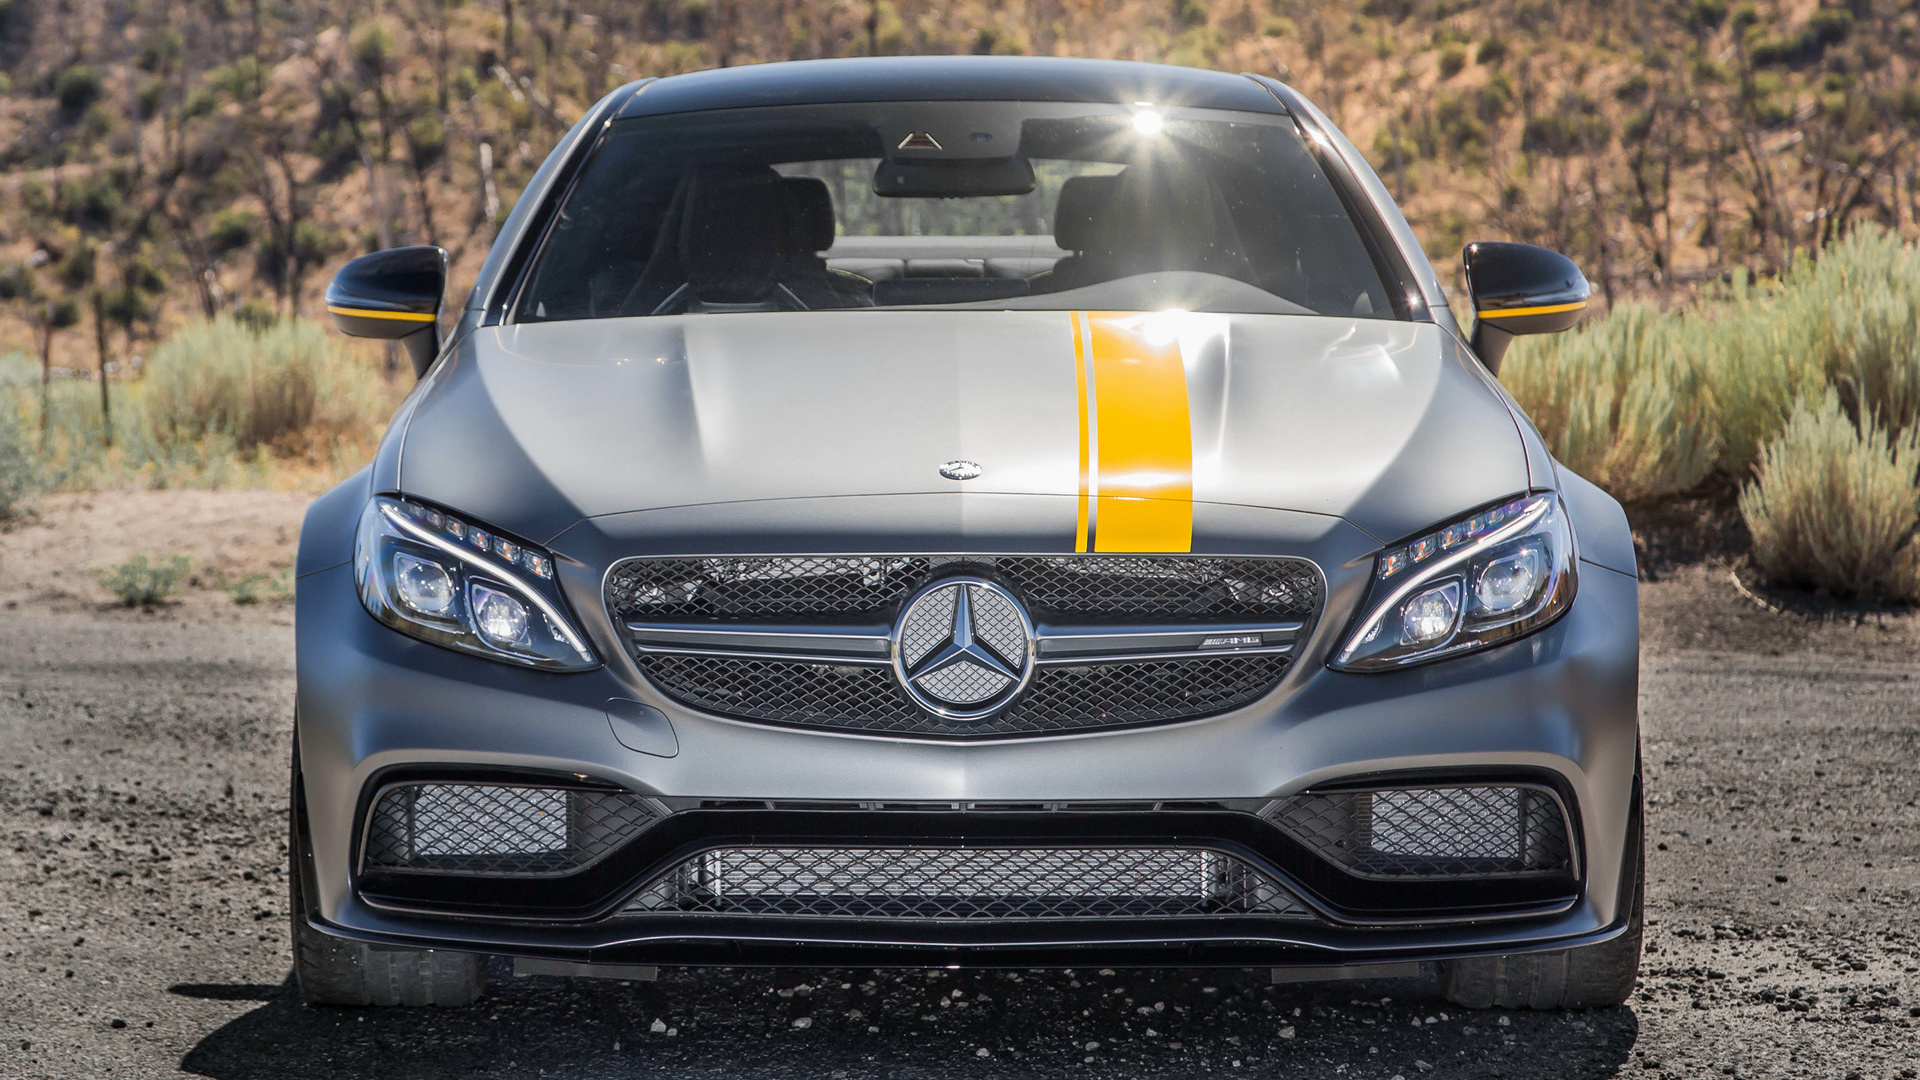 https://www.carpixel.net/w/7ae21973ddffe6d9a8e09c3a22d3264b/mercedes-amg-c-63-s-coupe-edition-1-wallpaper-hd-58087.jpg